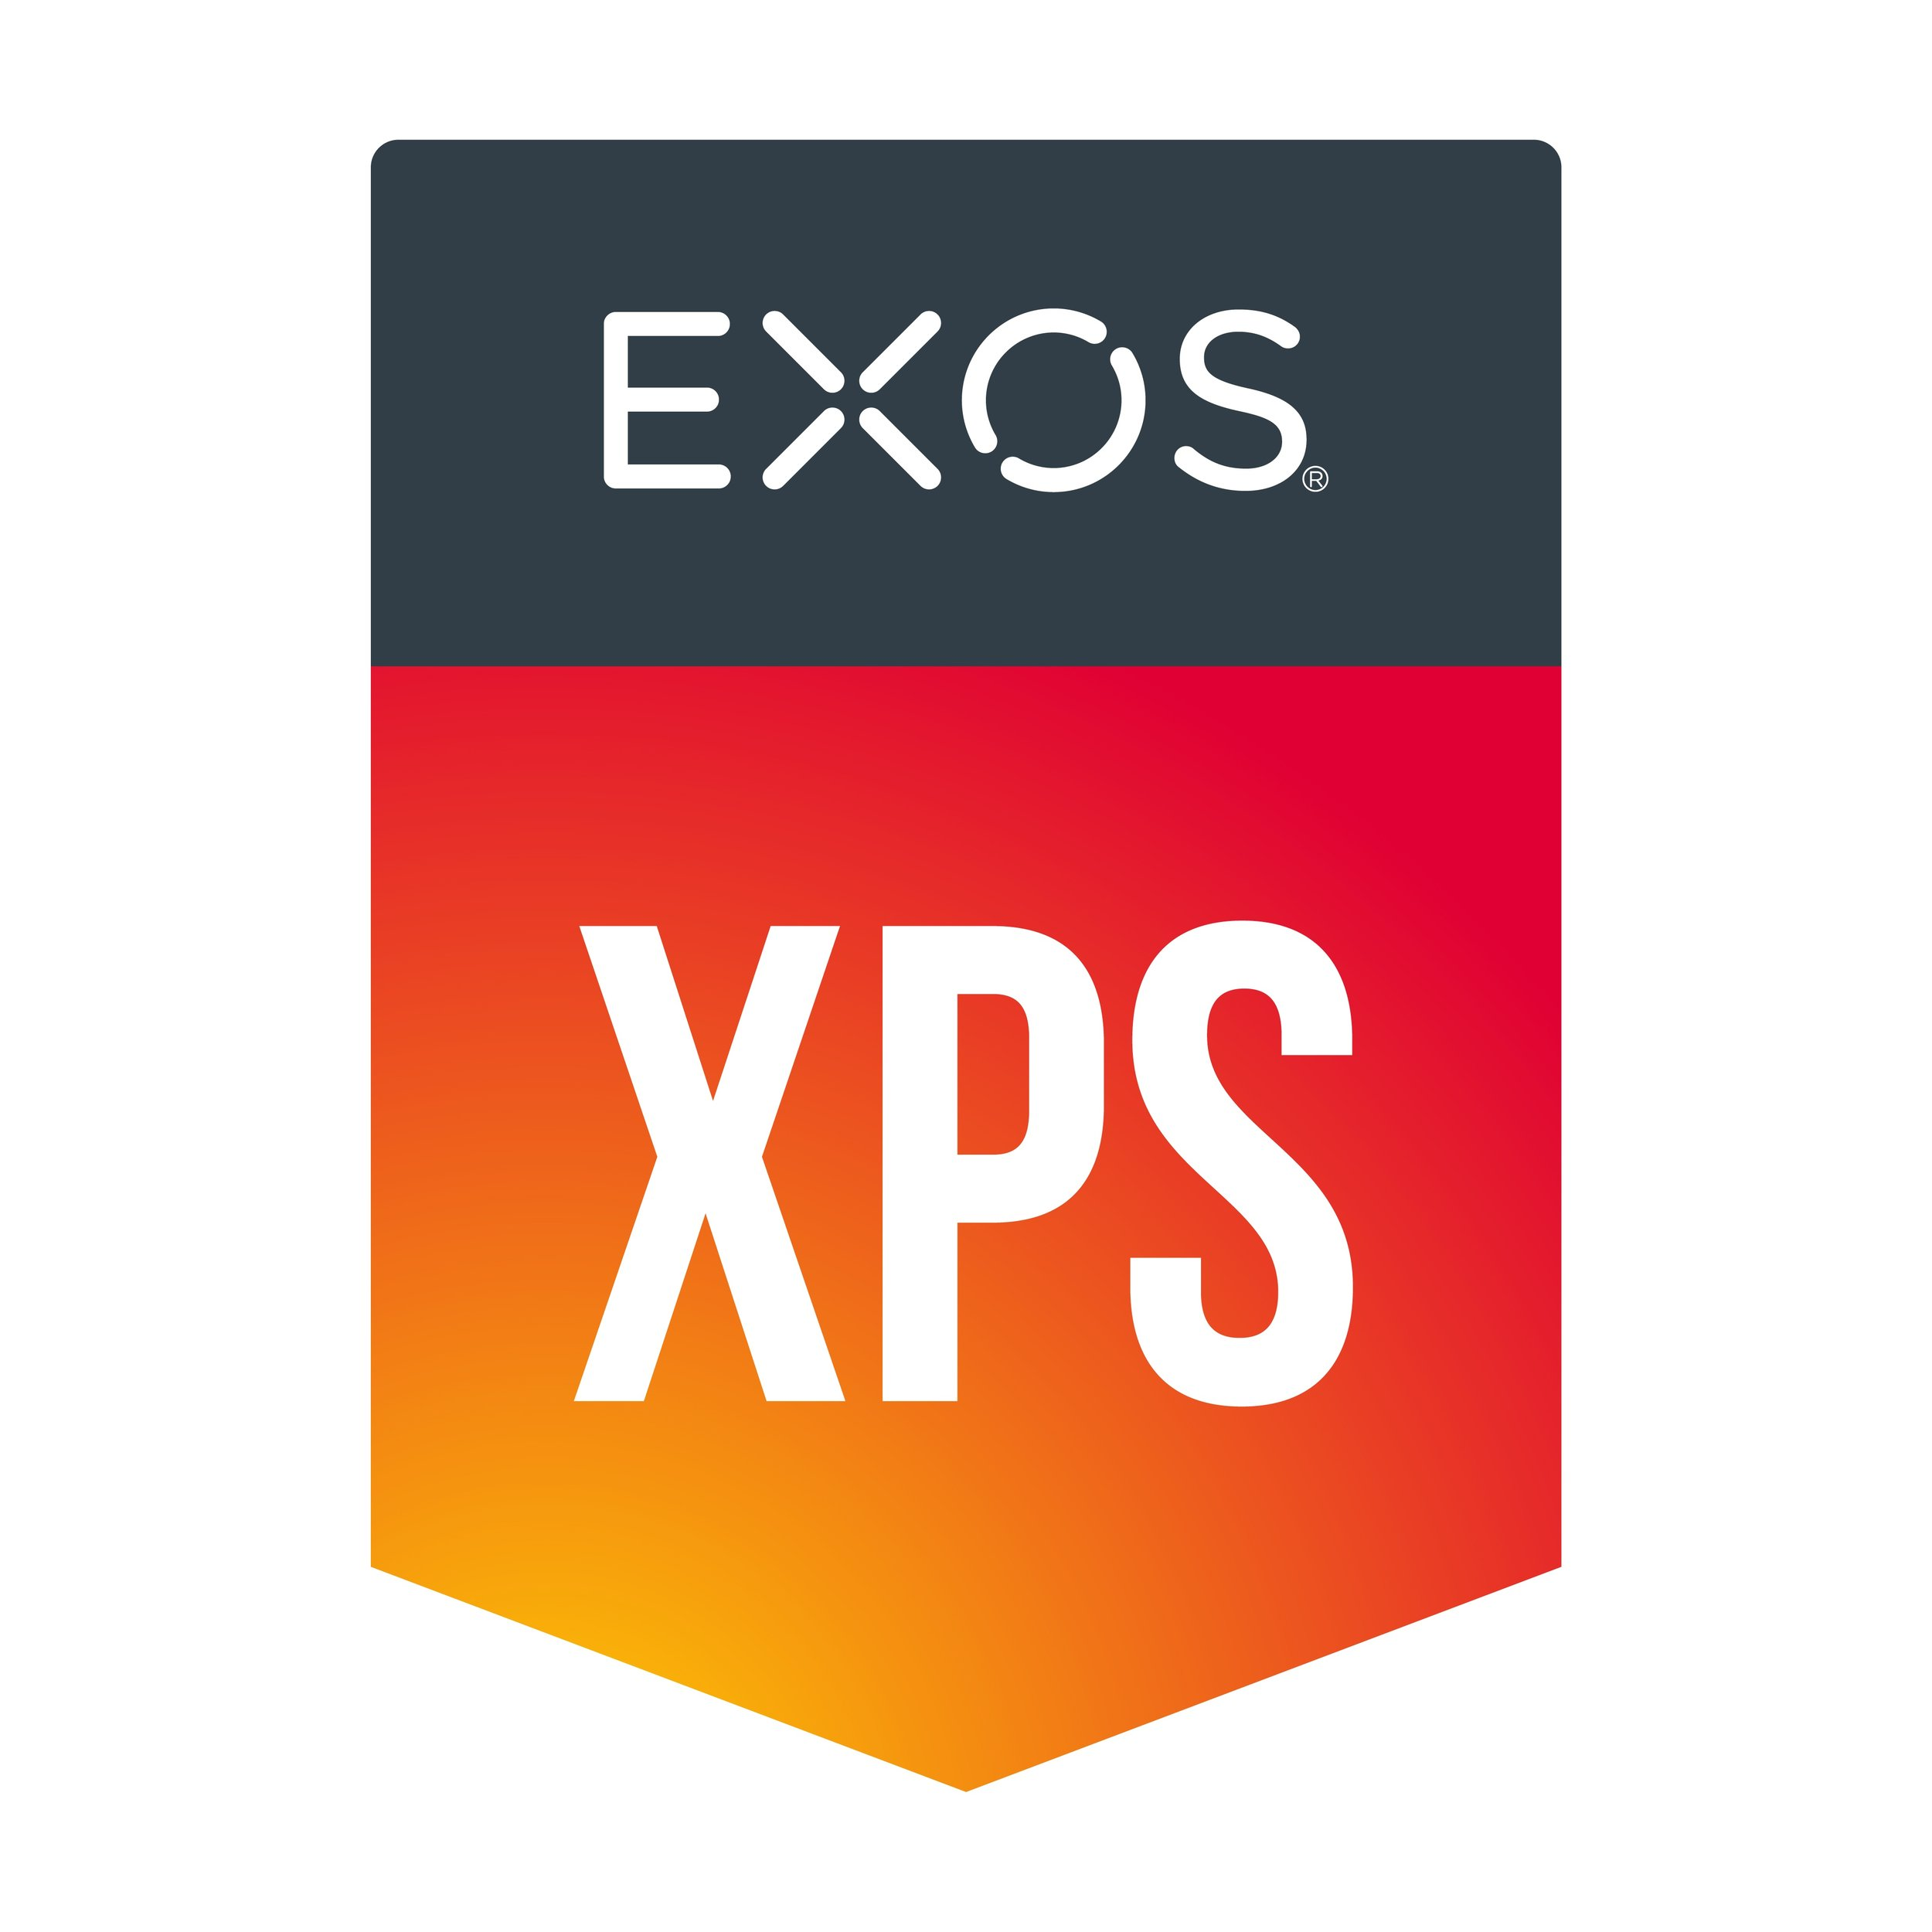 EXOSXPS Badge.jpg